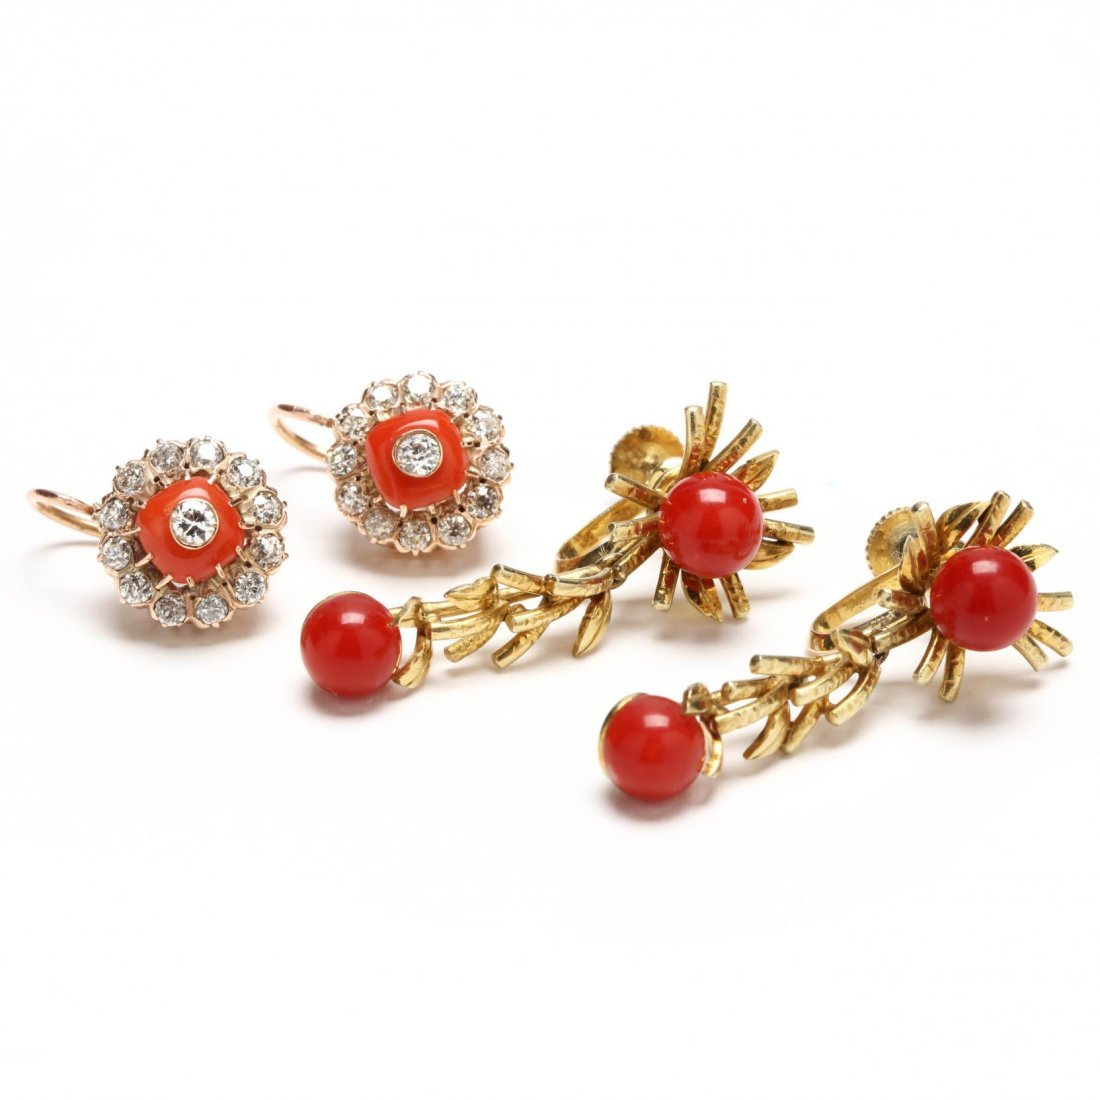 Two Pairs of Vintage Coral Earrings